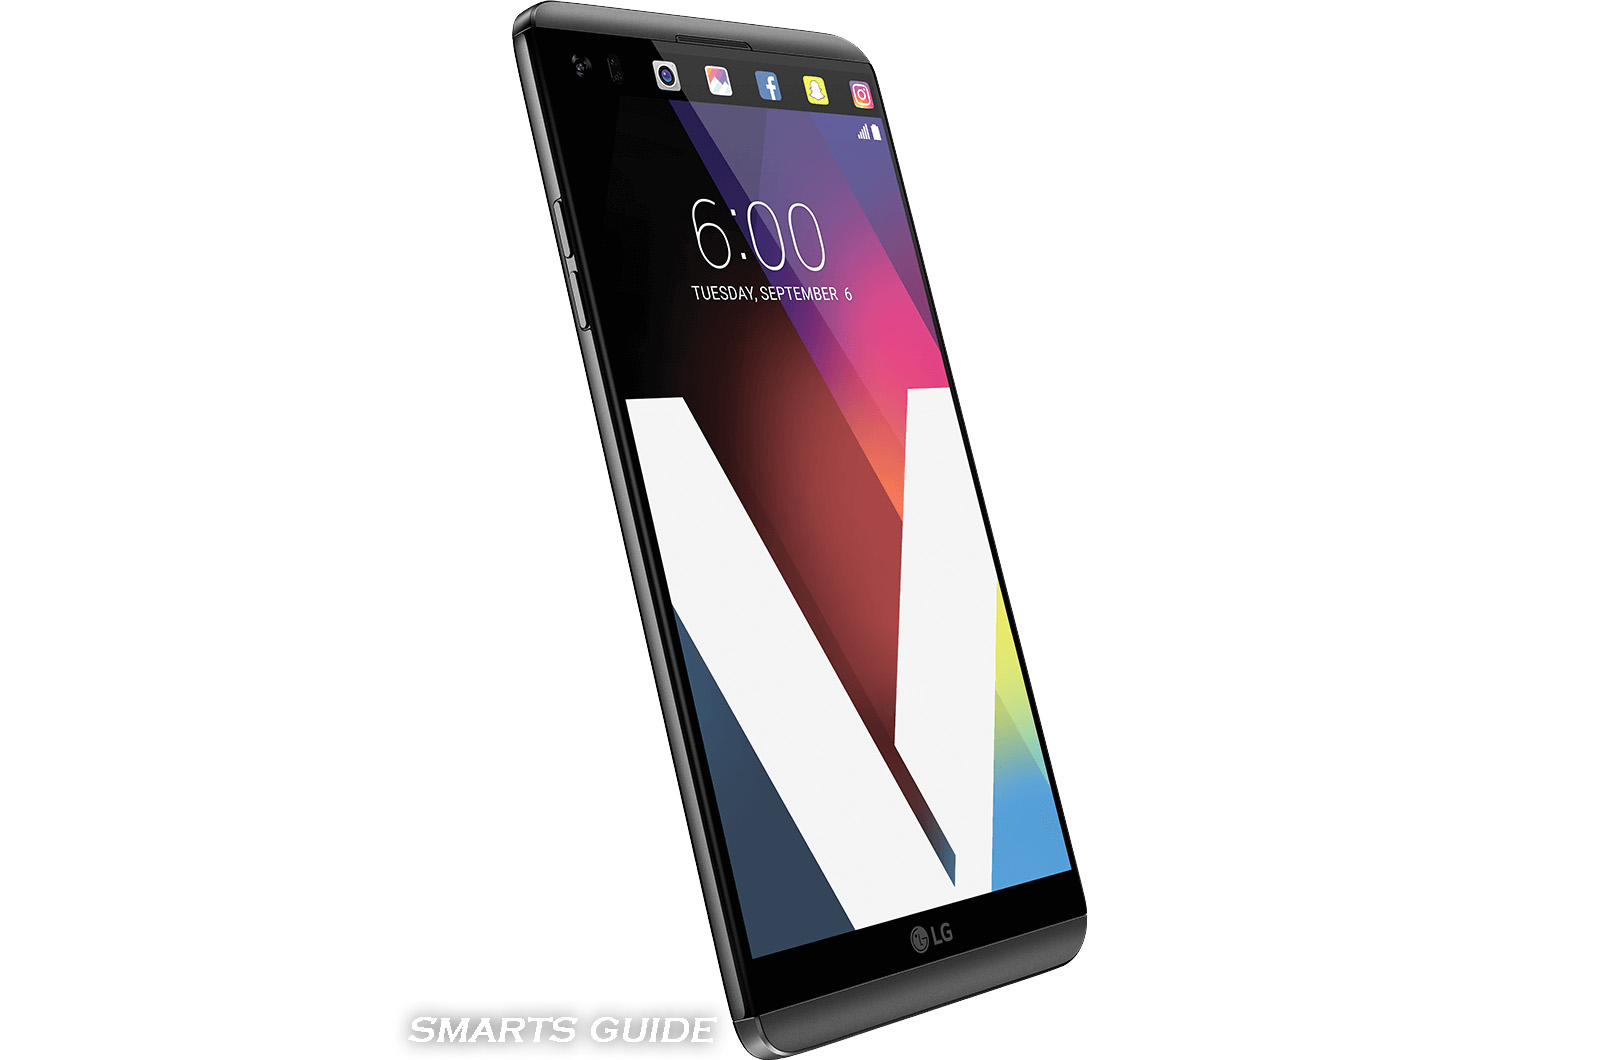 Update LG V20 Android Oreo 8 0 Firmware [How to Guide]